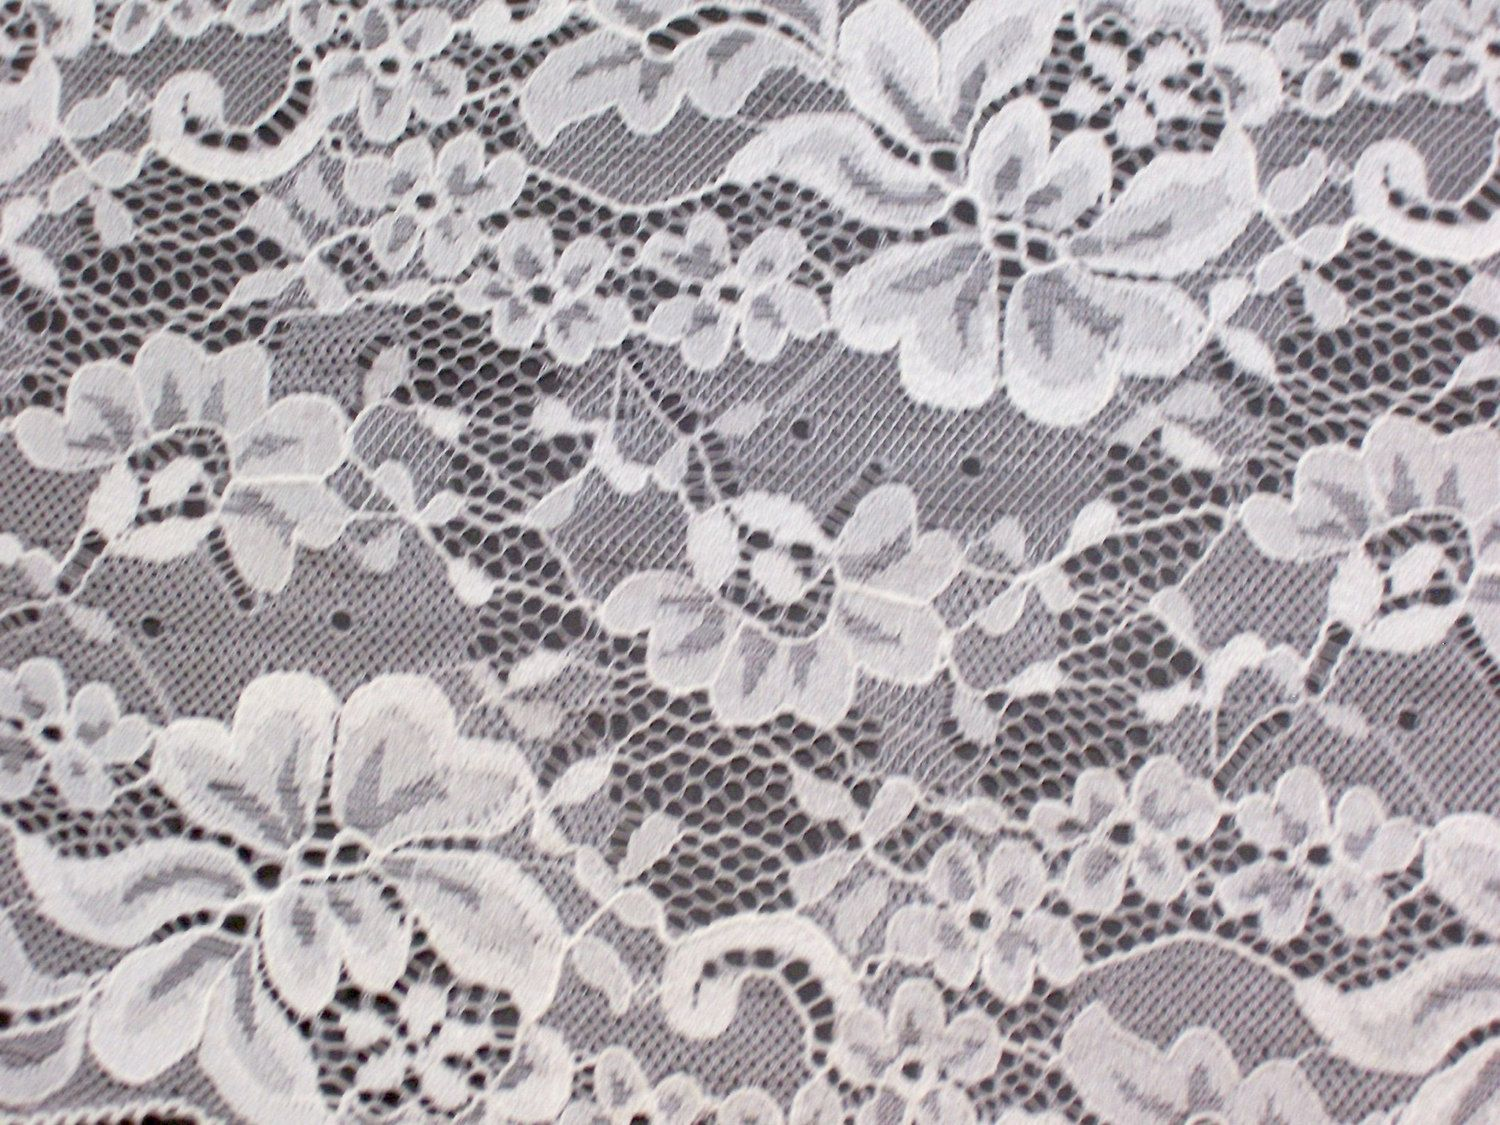 Wide Ivory Lace 5 1/2 inches wide x 1 yard, Wide Lace by GriffithGardens on Etsy